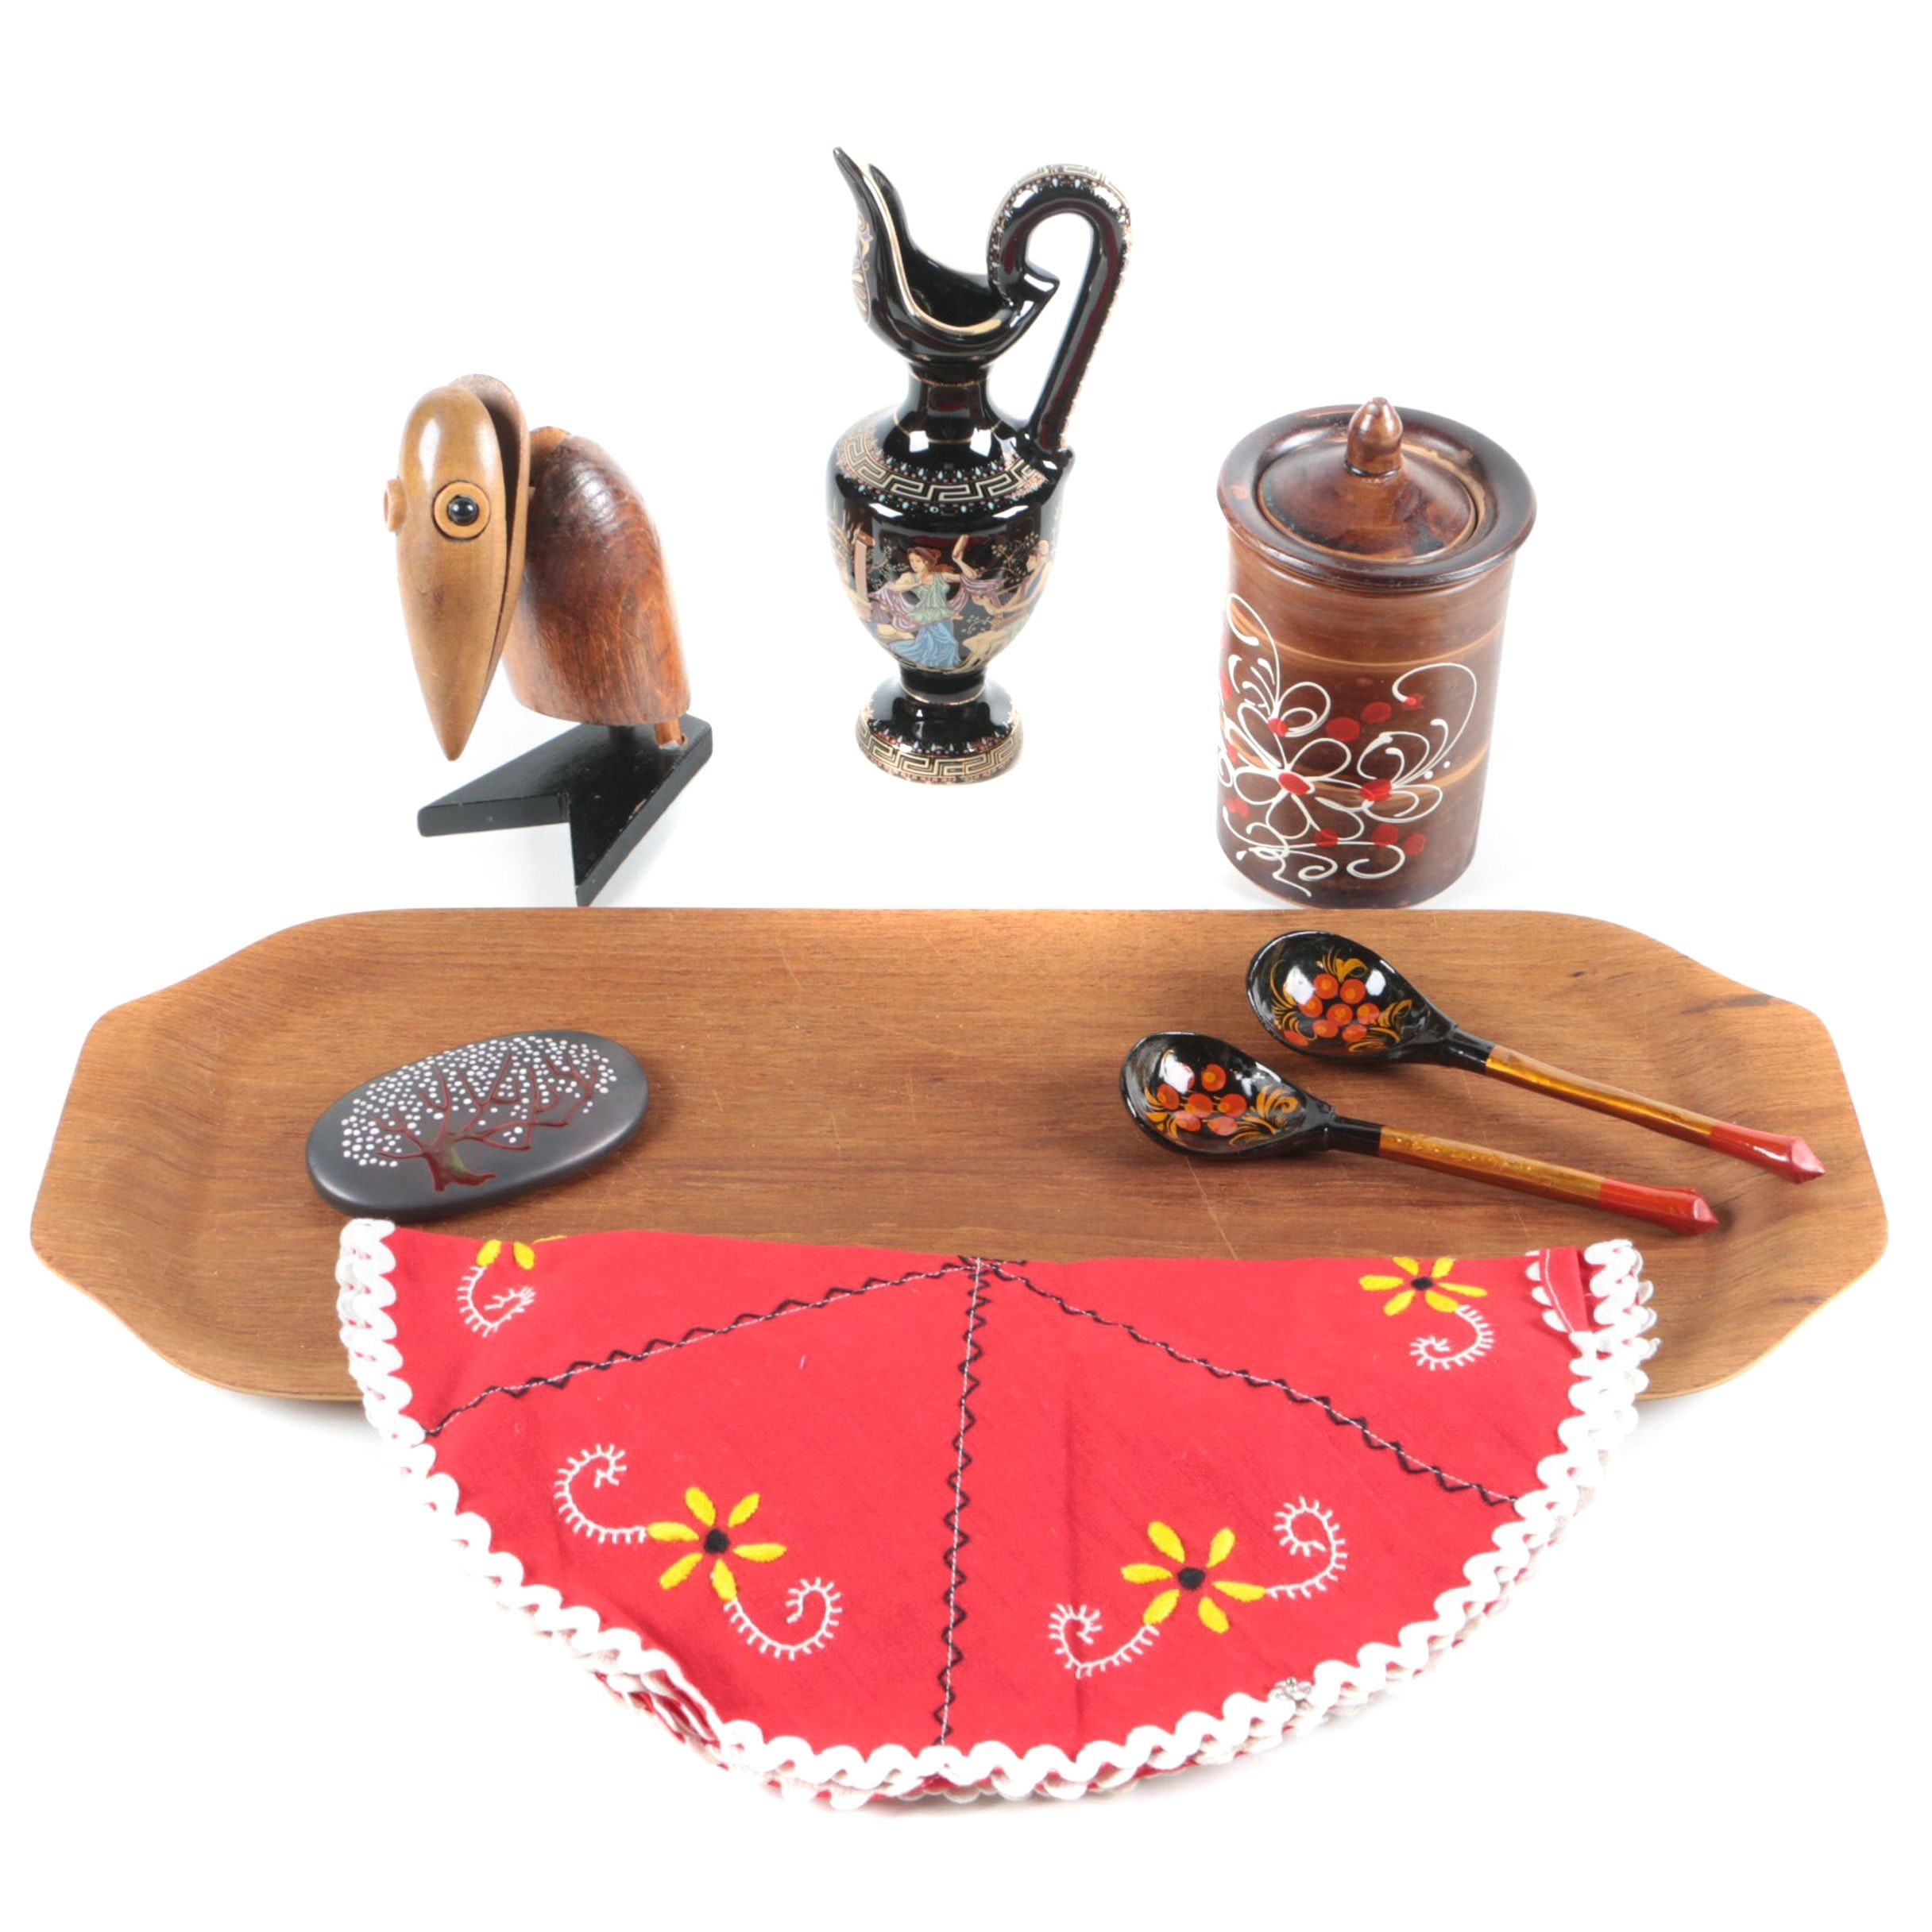 Teak Serving Tray, Greek Ceramic Urn, Russian Lacquer Spoons and More